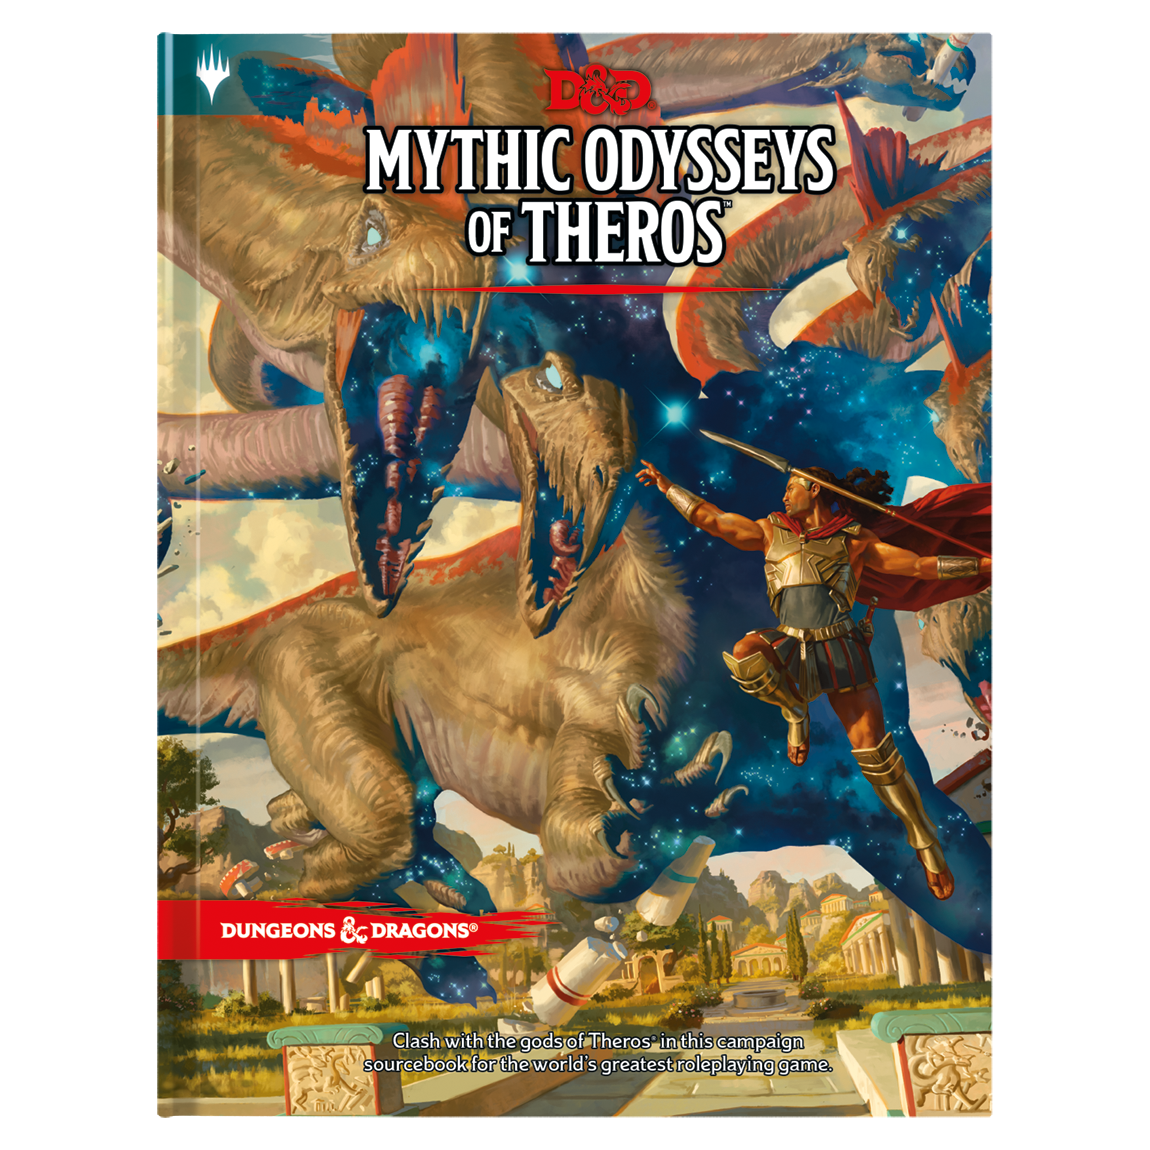 MYTHIC ODYSSEYS OF THEROS - CAMPAIGN SOURCEBOOK